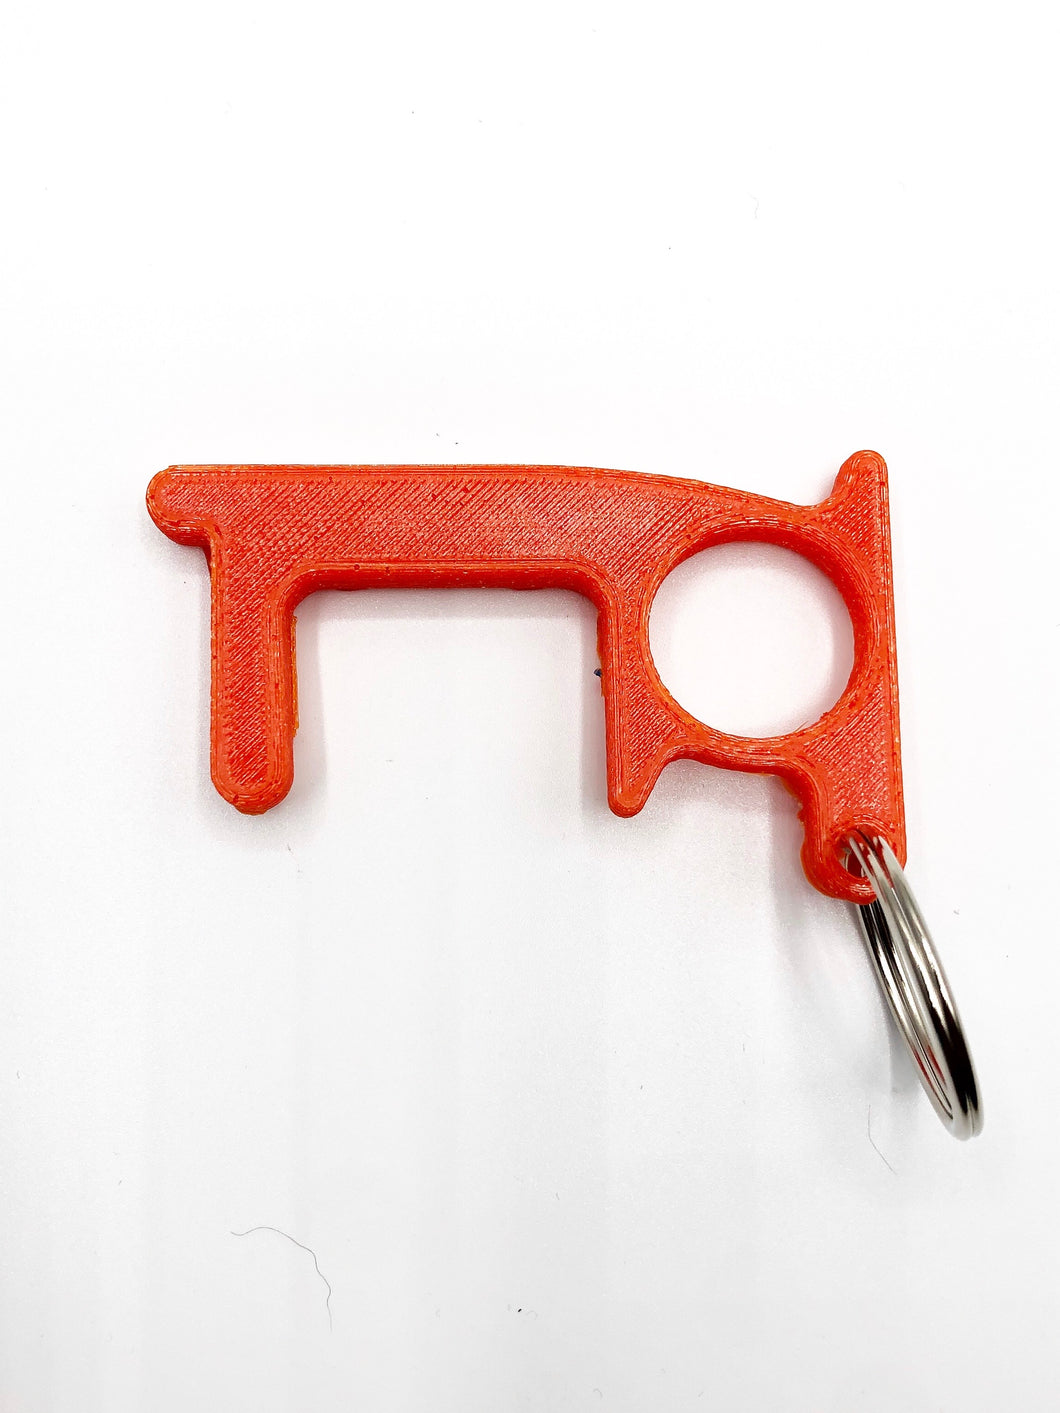 Standard Touch Tool - in Orange